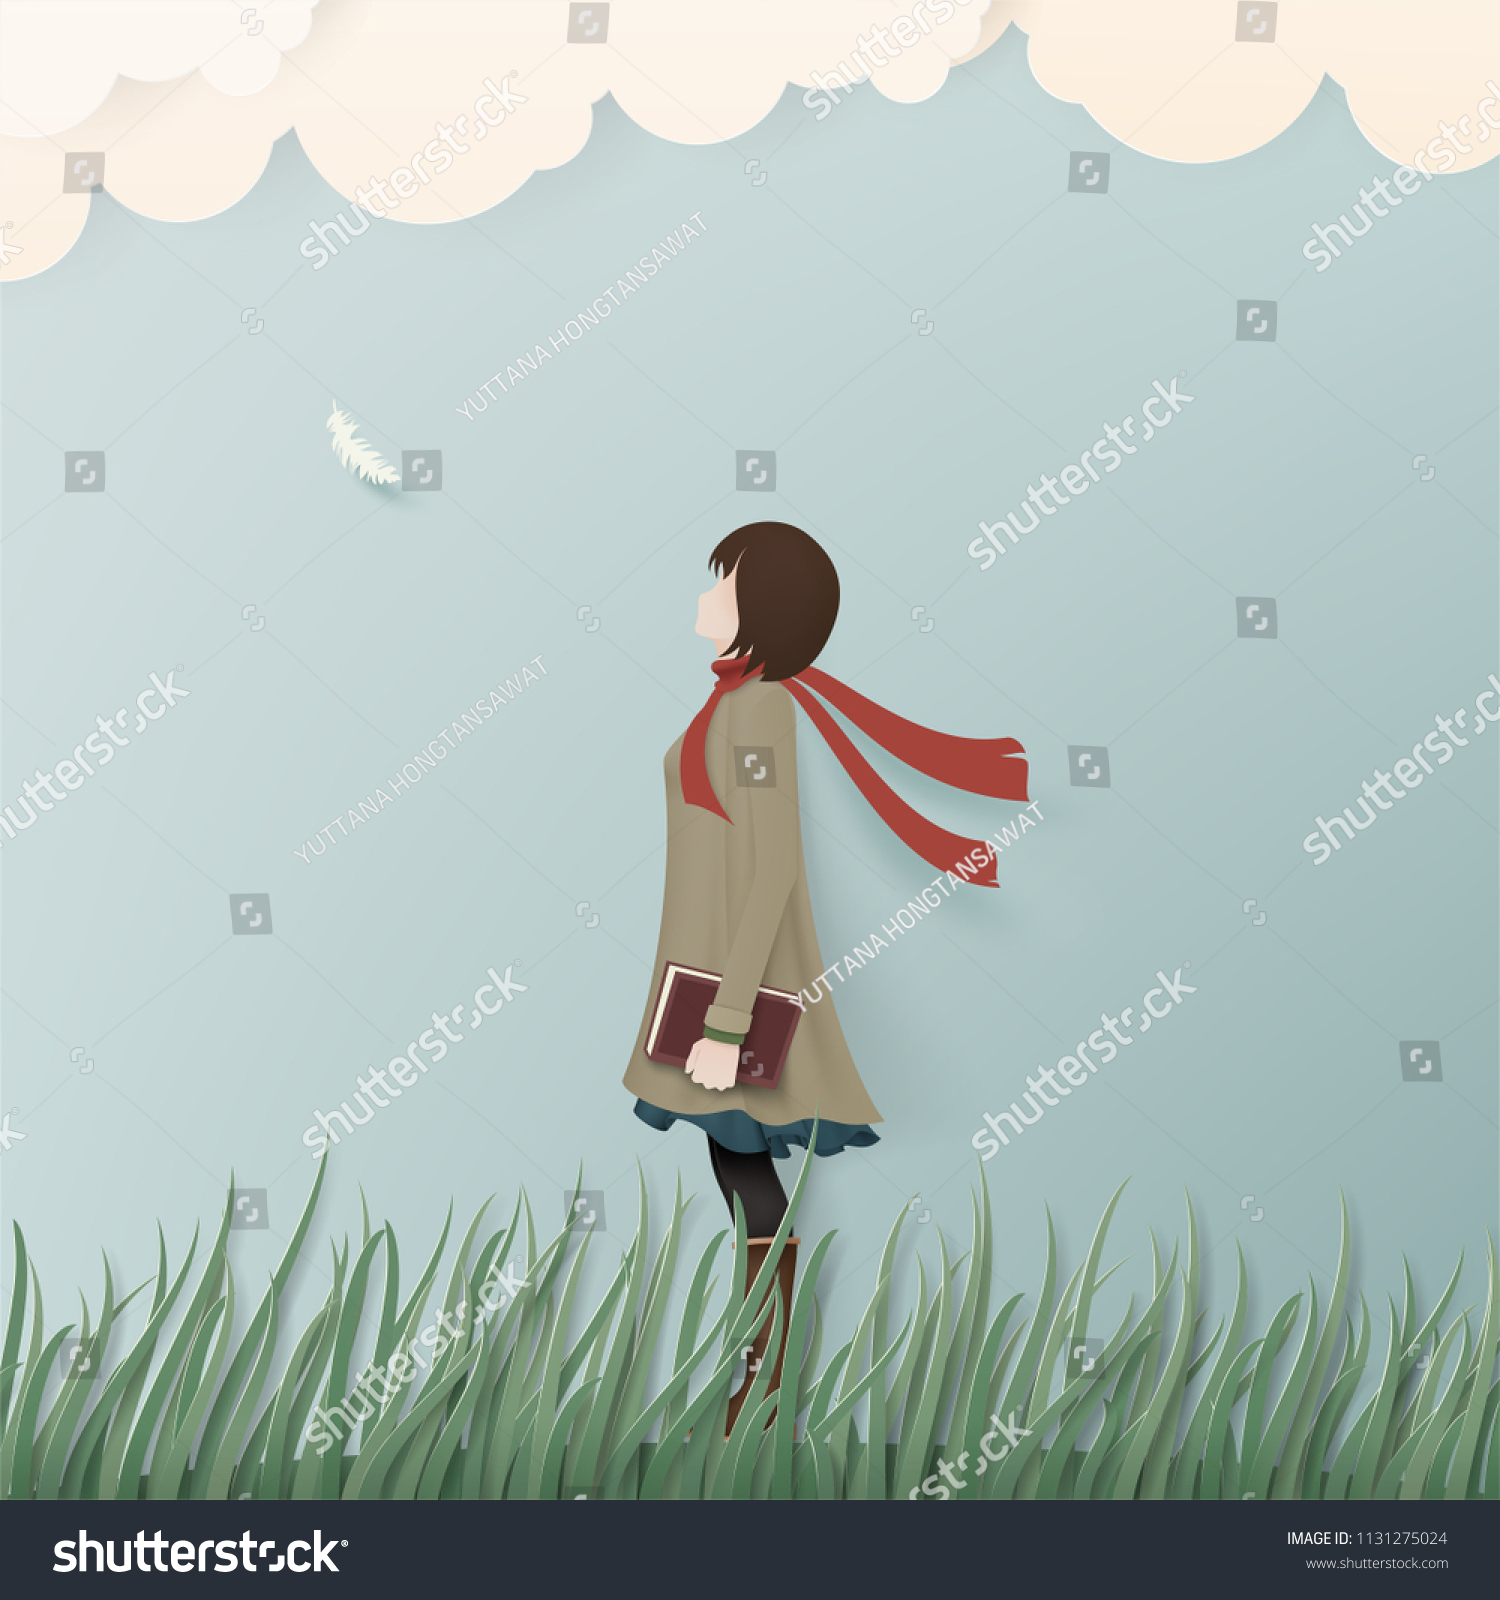 Alone girl in winter coat on green grass with book paper art concept background